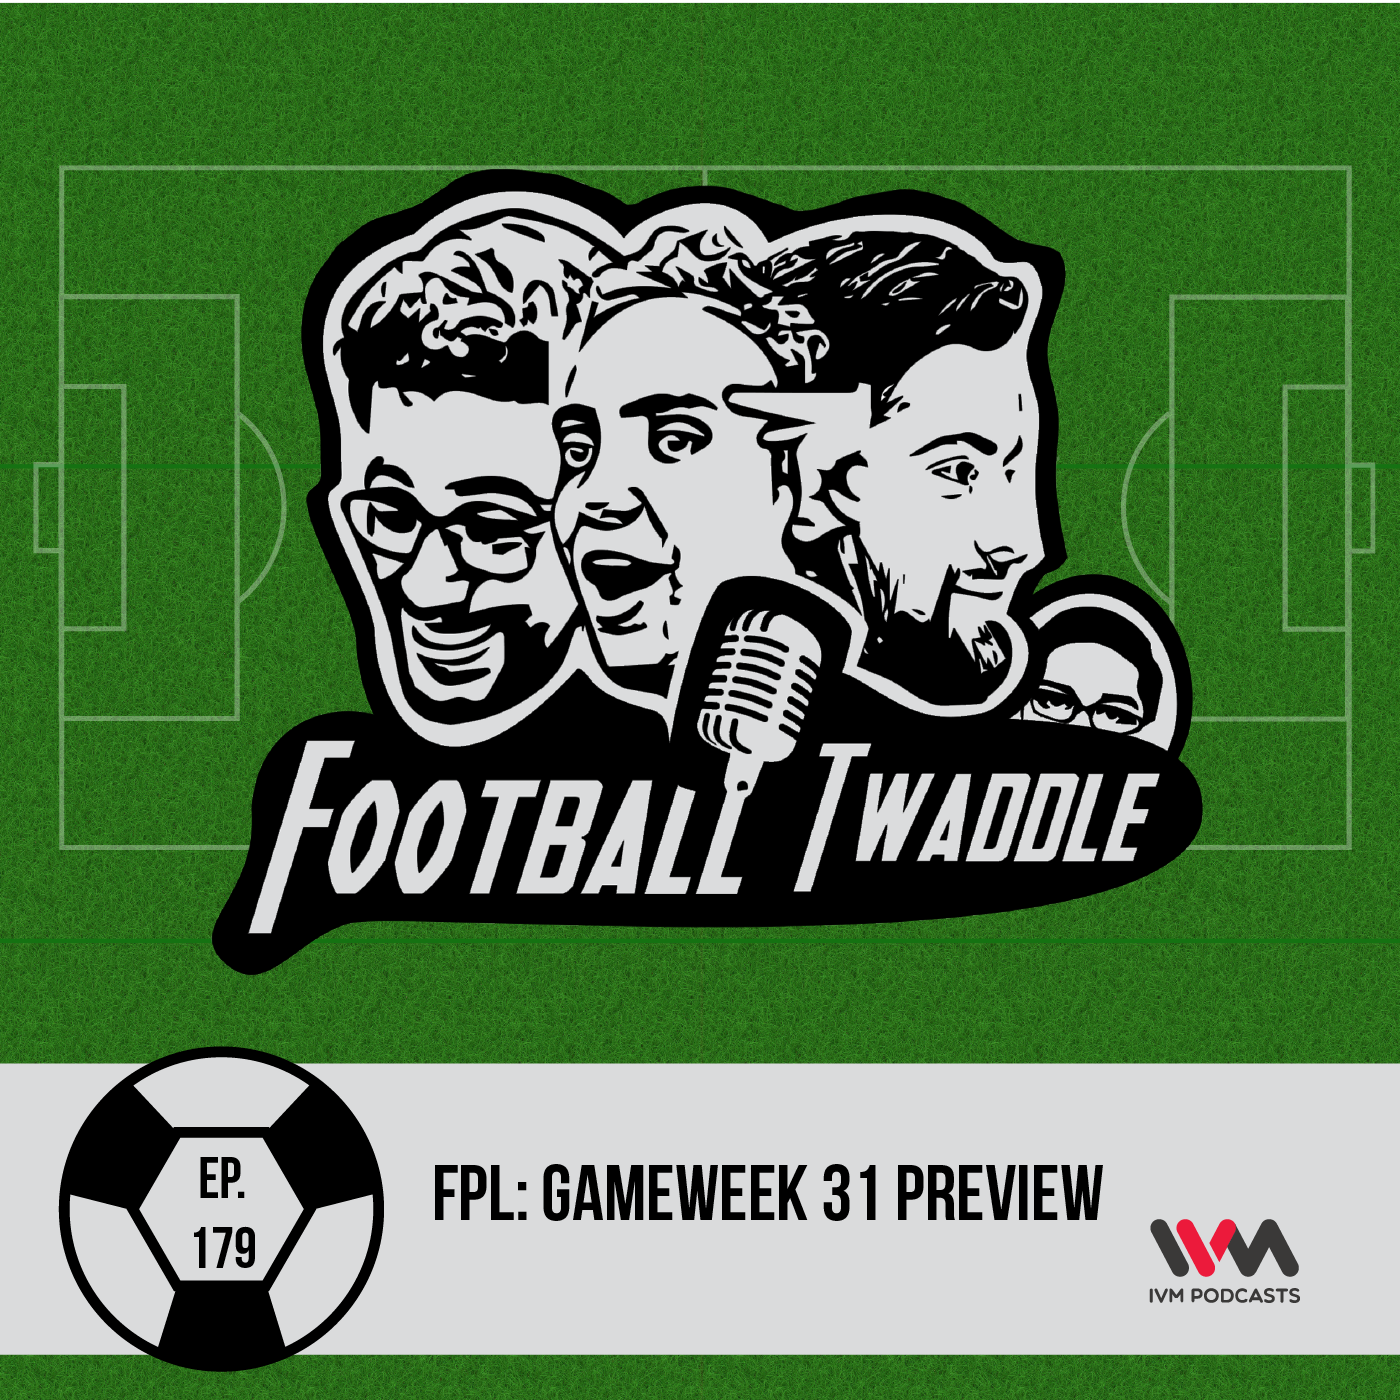 FPL: Gameweek 31 Preview